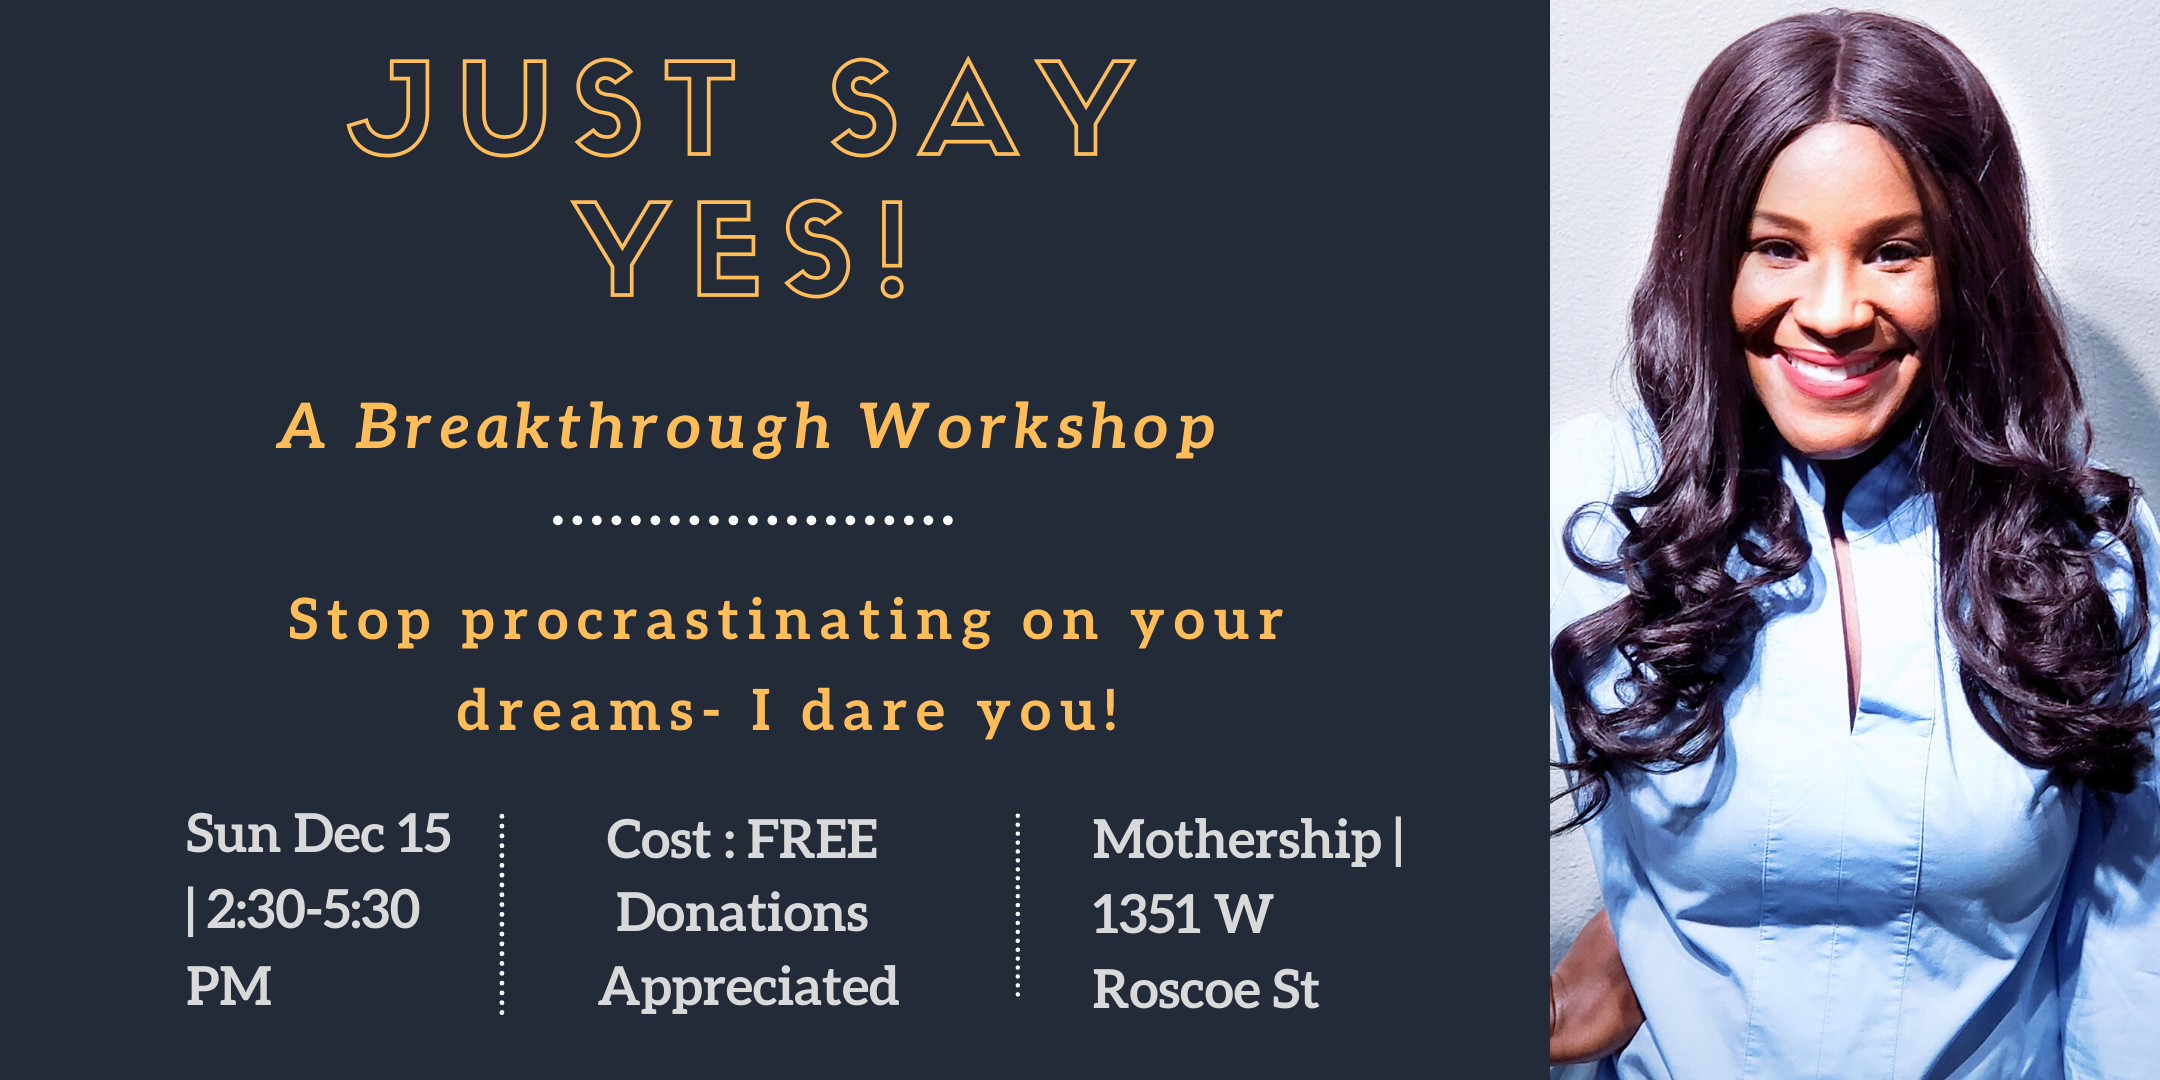 Just Say Yes! How to MAKE 2020 Your BEST YEAR - A BREAKTHROUGH Workshop